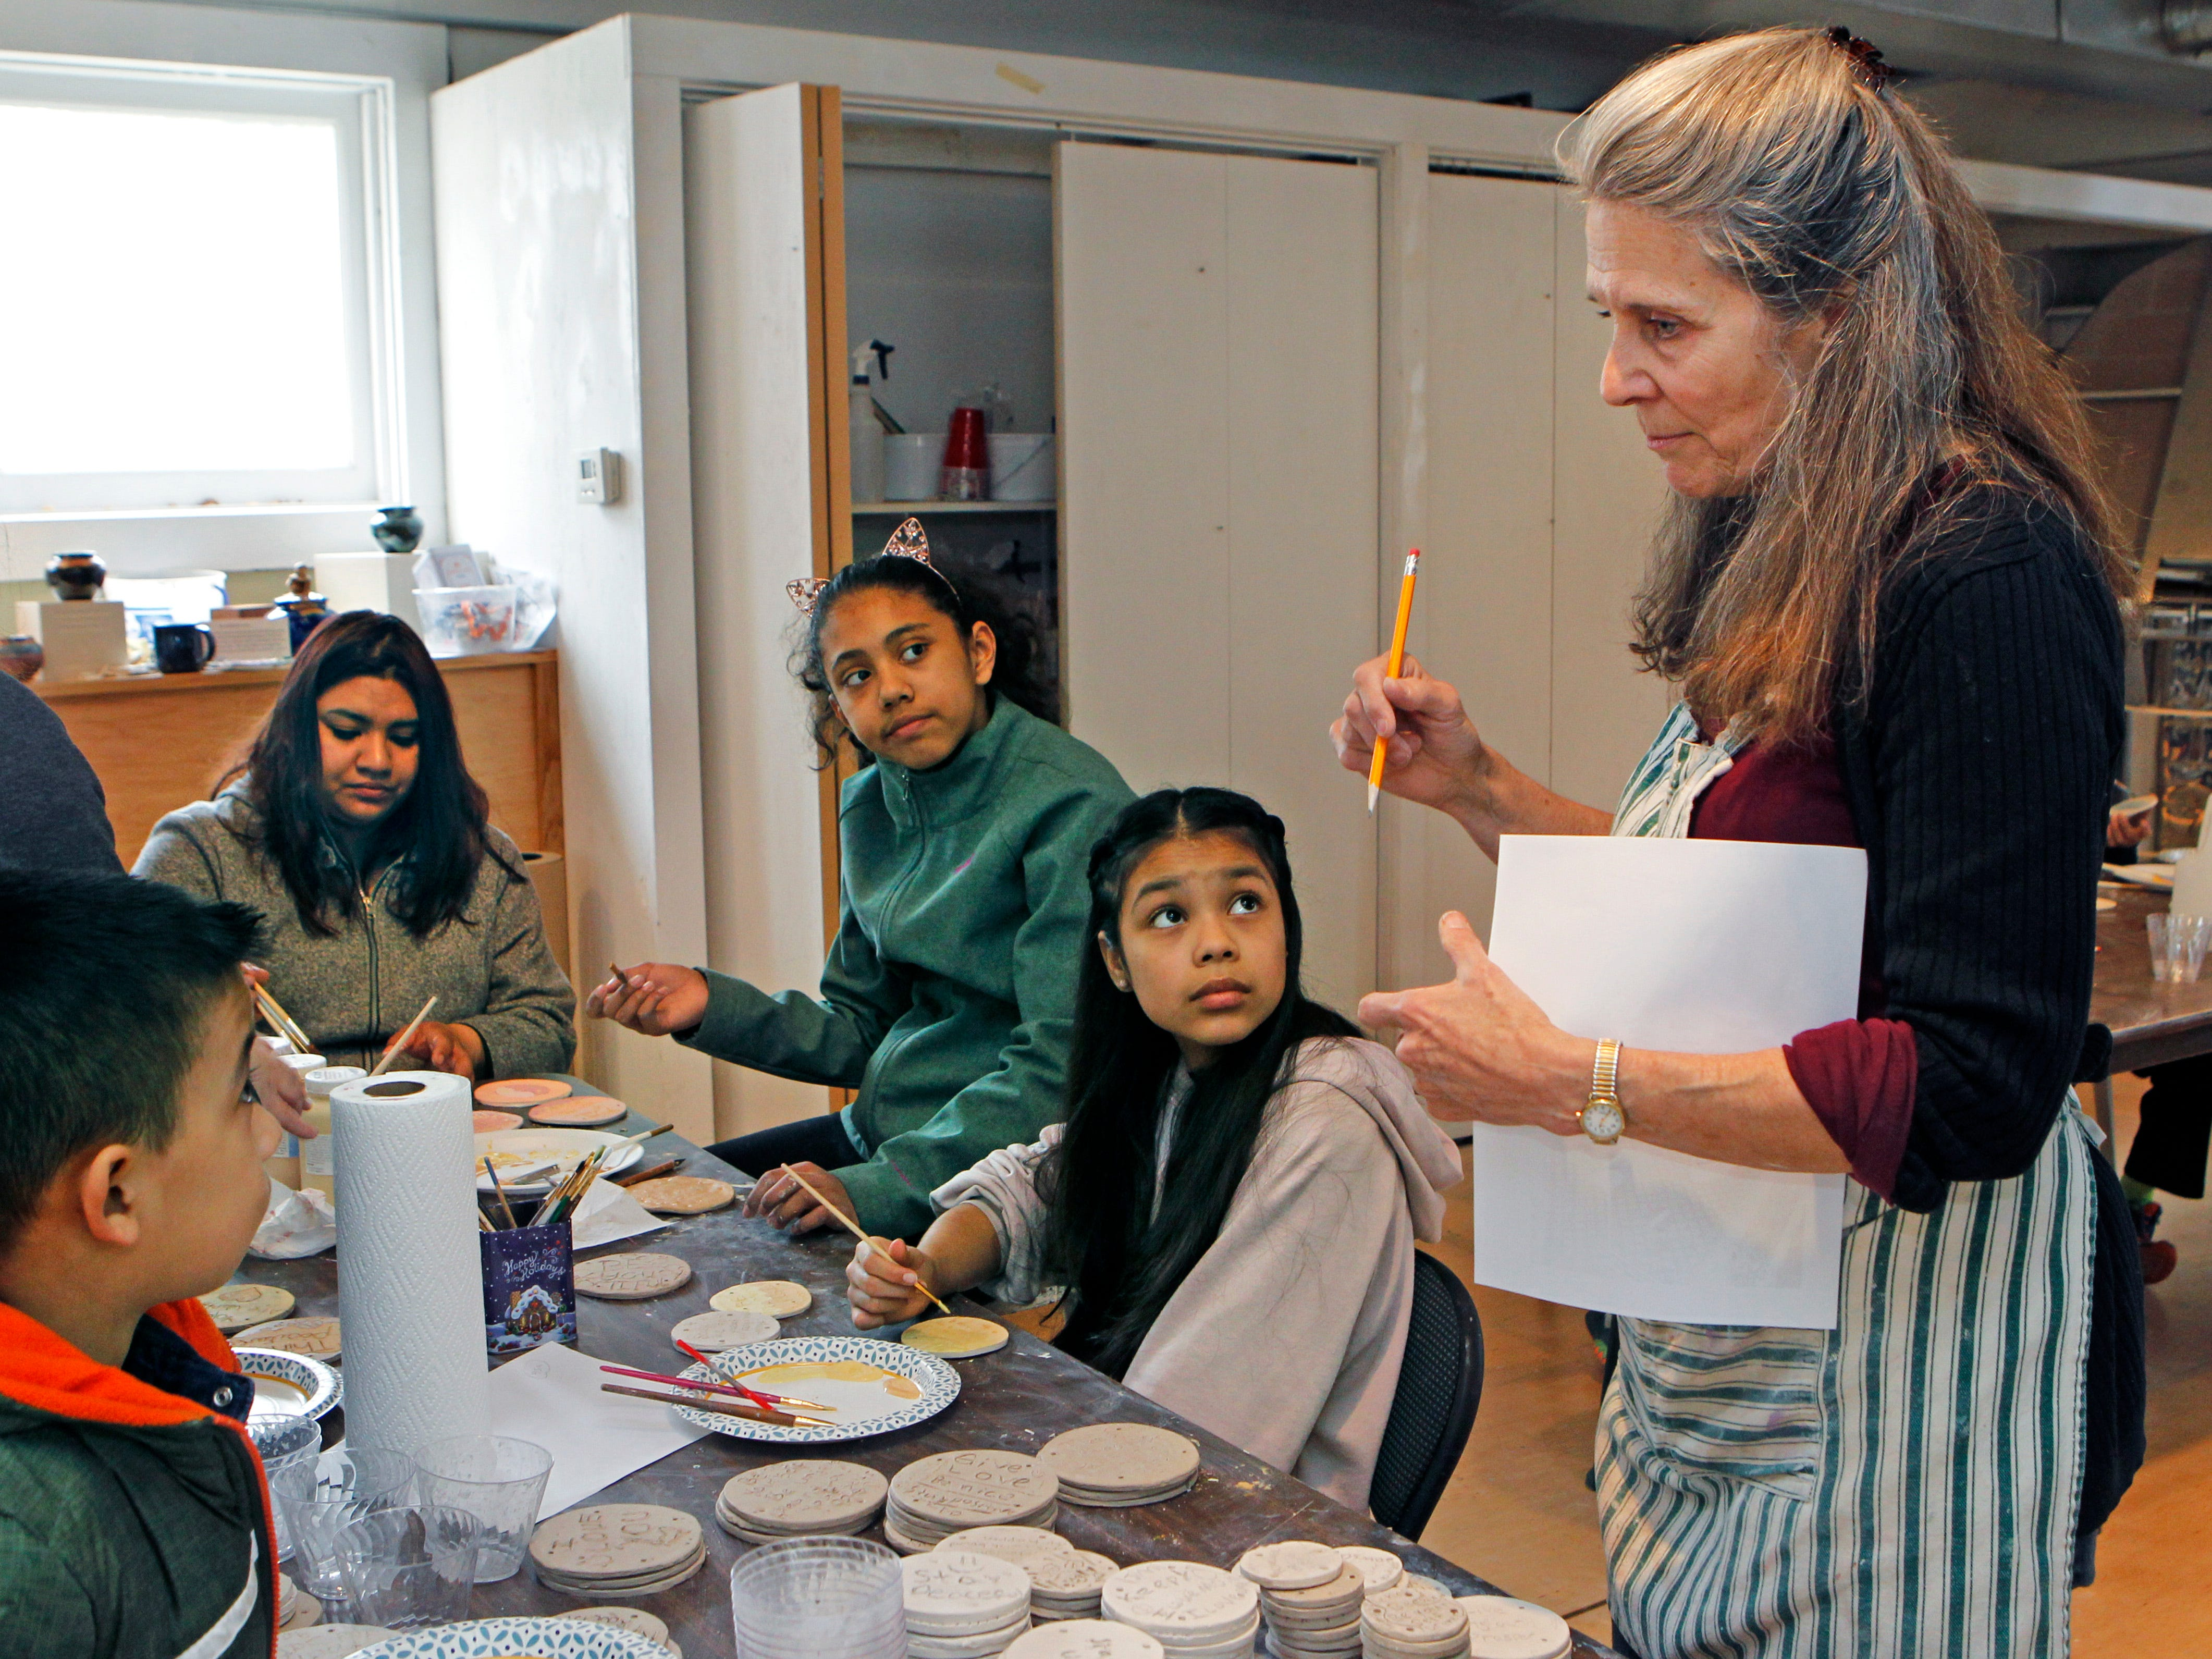 Lori Gramling gives some pointers to youths who are painting their tiles.